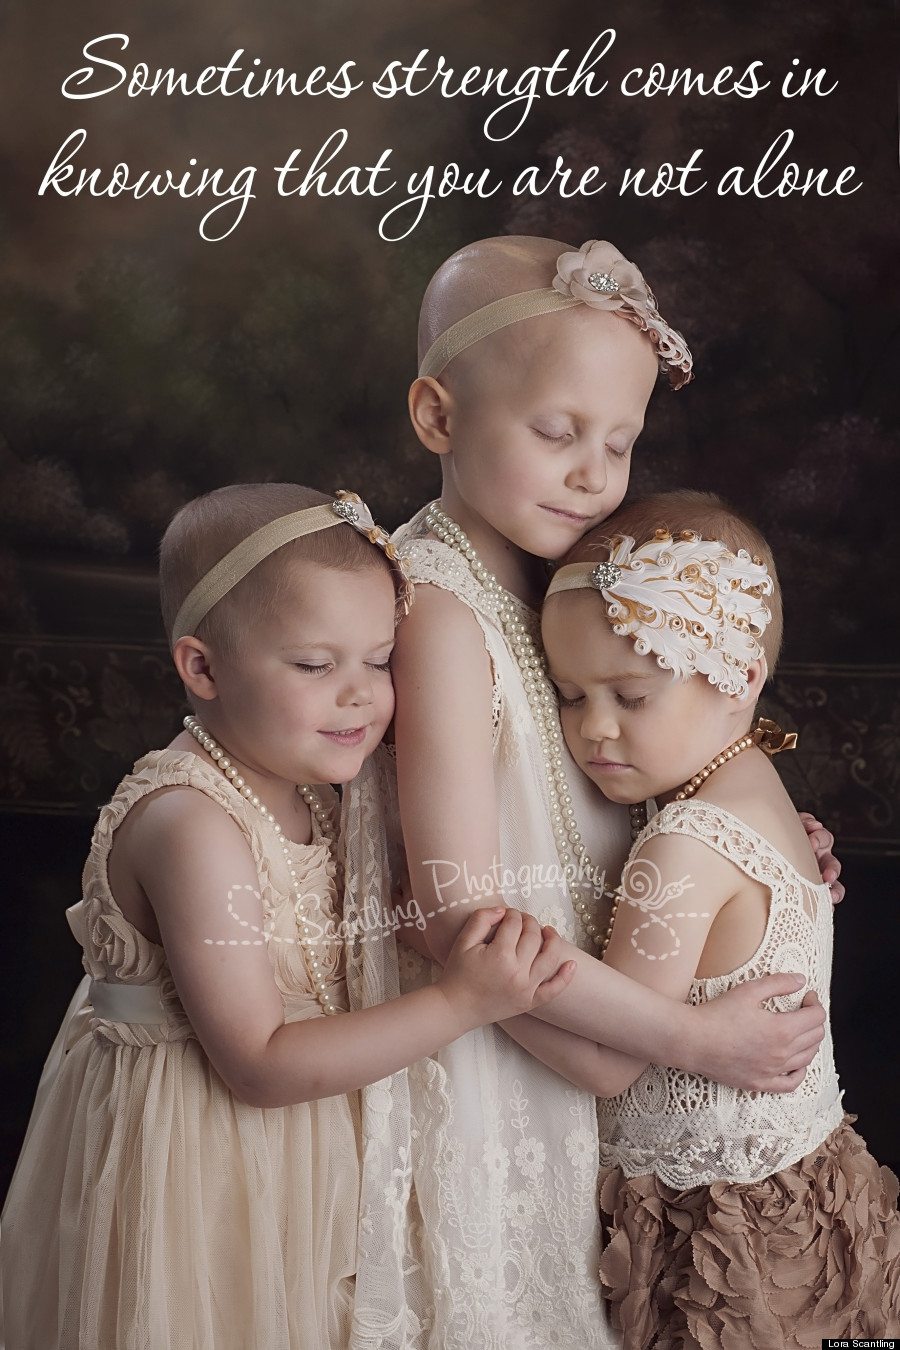 3-girls-fighting-with-cancer